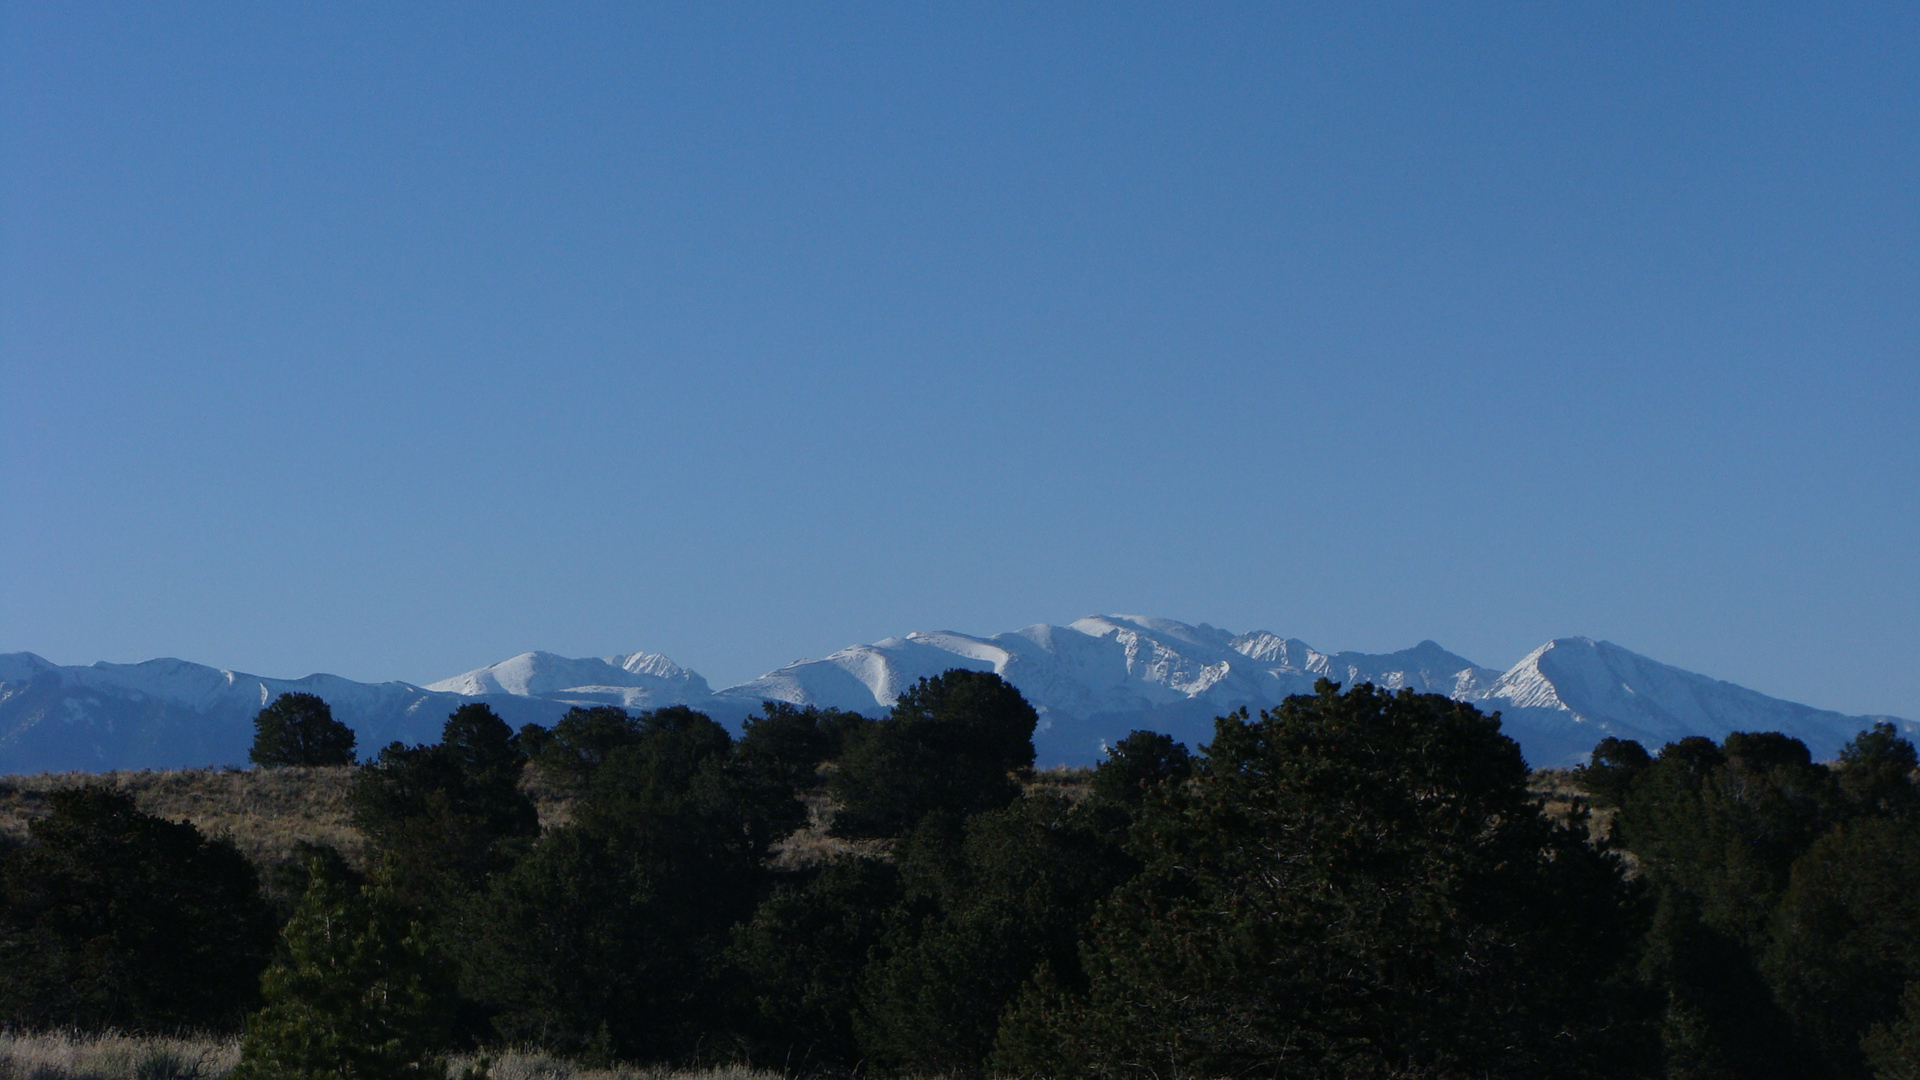 Blanca Peak showing off her fresh spring snow on a clear, crisp spring morning.